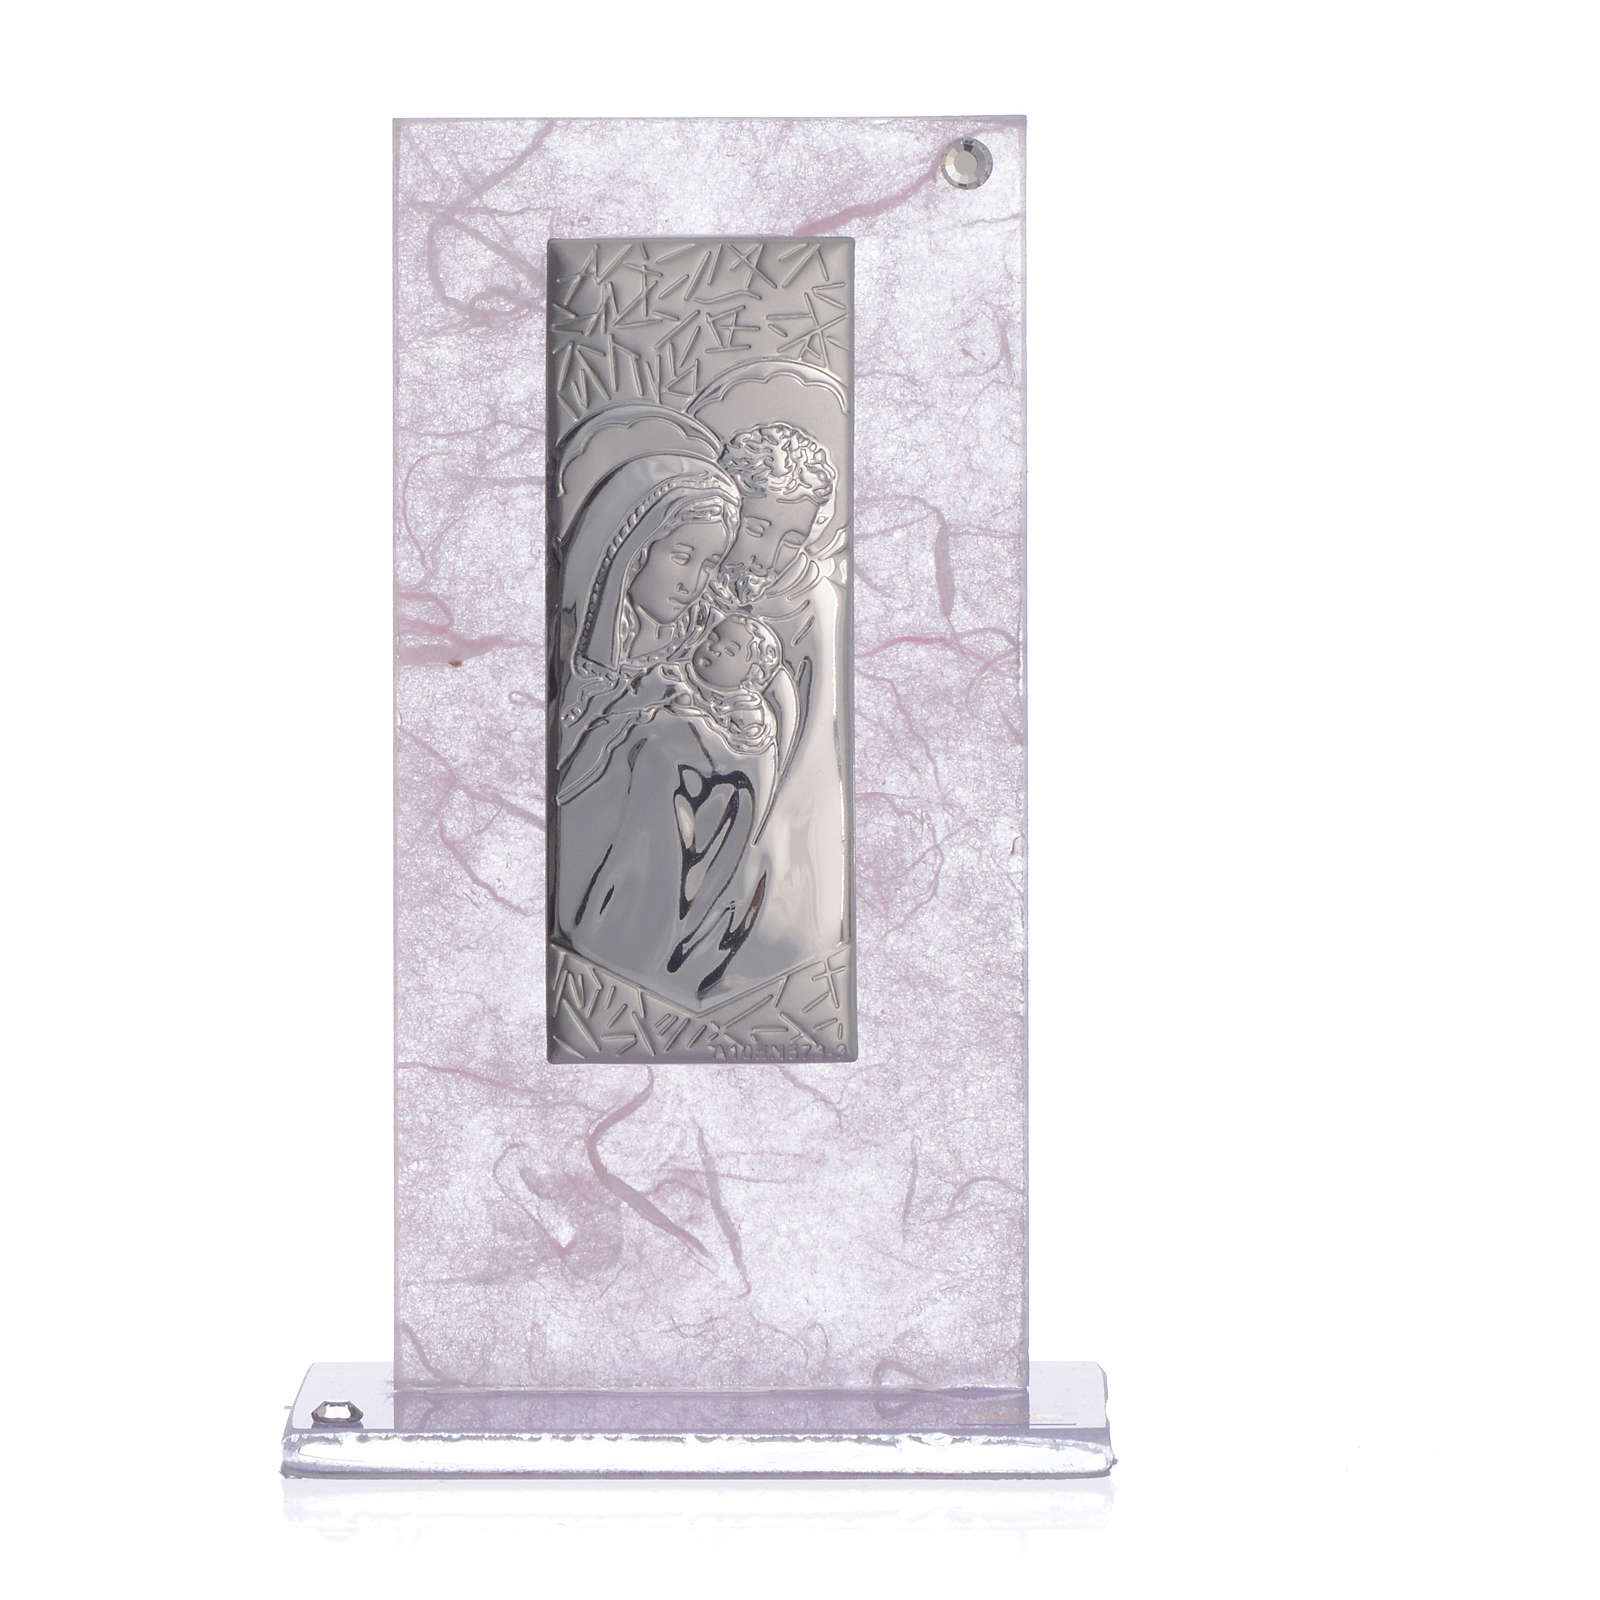 Wedding Favour with Holy Family image in silver pink and lilac 3